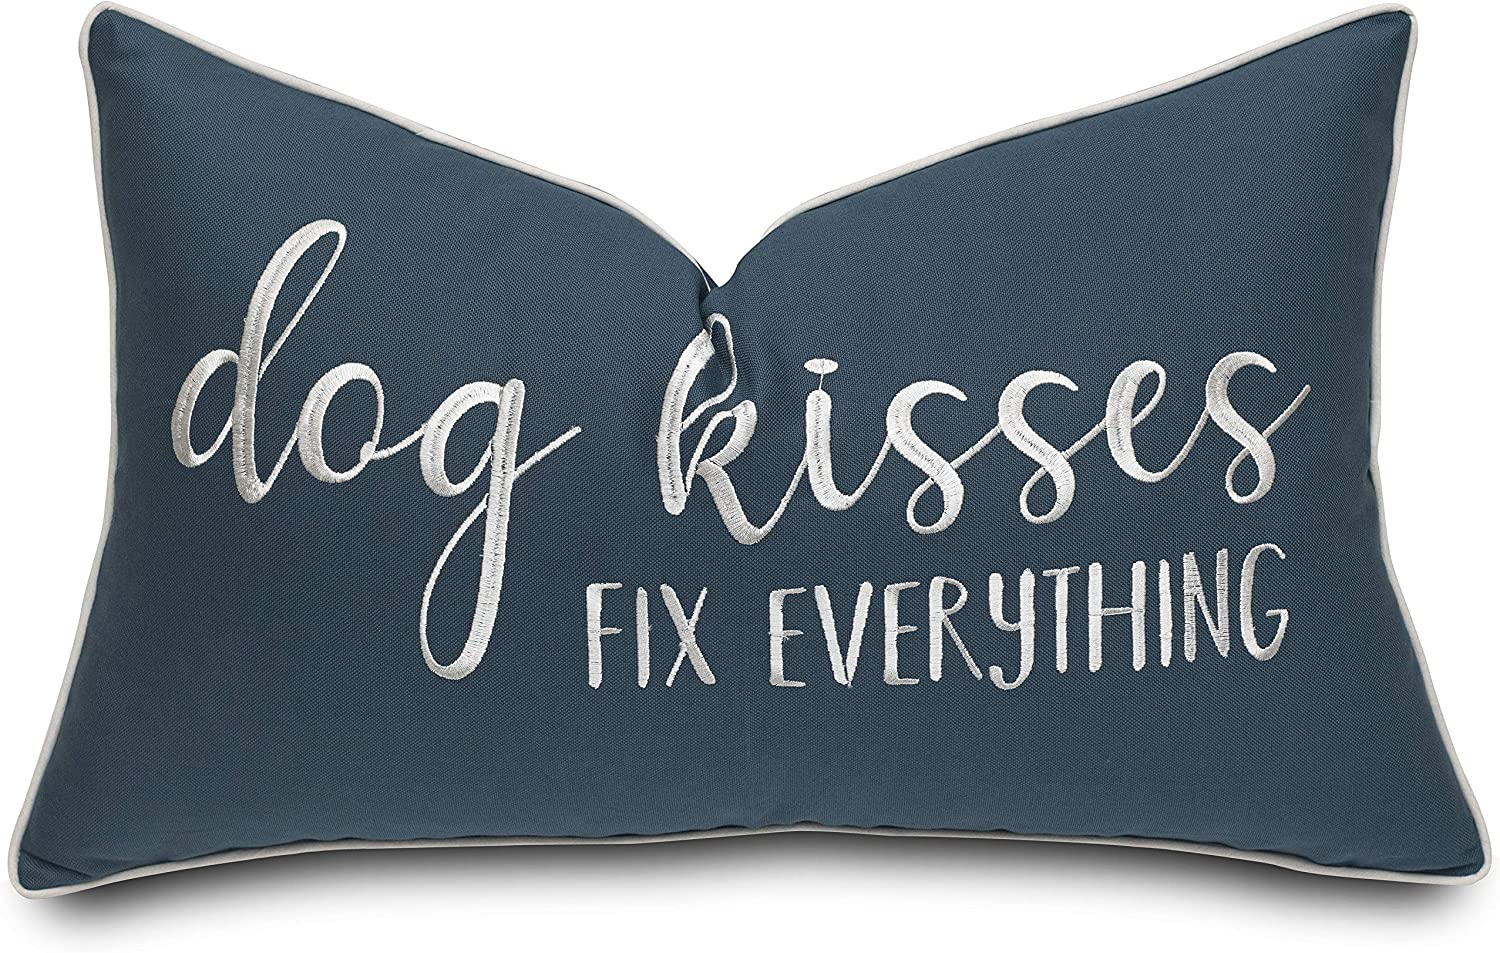 Rudransha Dog Kisses Fix Everything Embroidered Lumbar Accent Throw Pillowcase - Gift for Pet Lover, Home Decor - 12x20 Inches, Teal